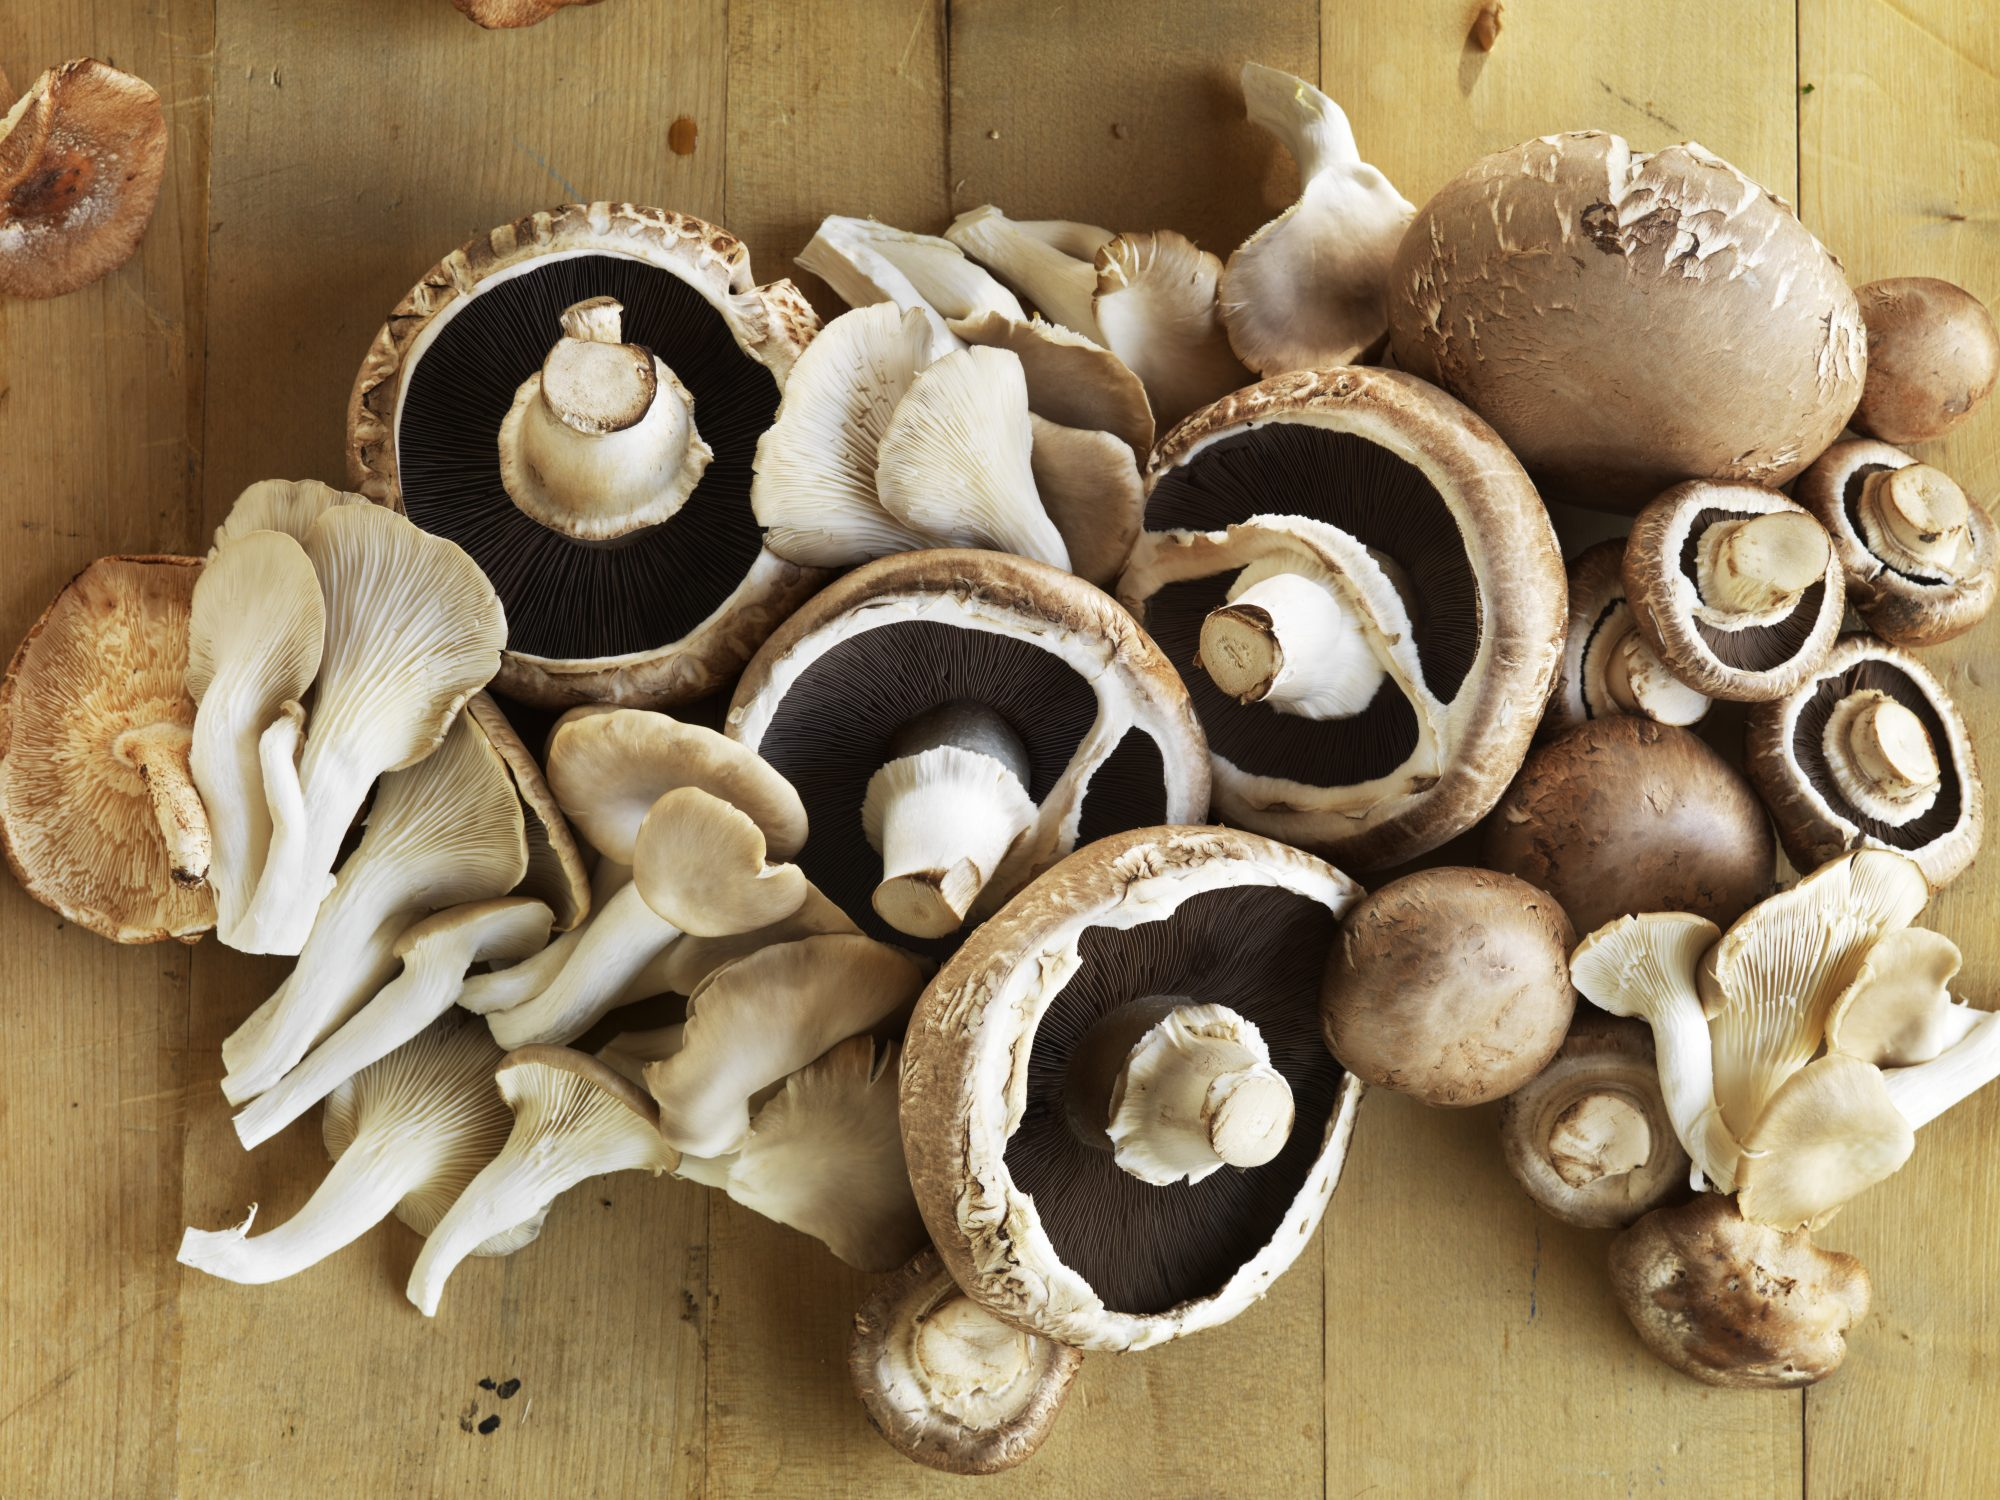 getty-mixed-mushrooms-image